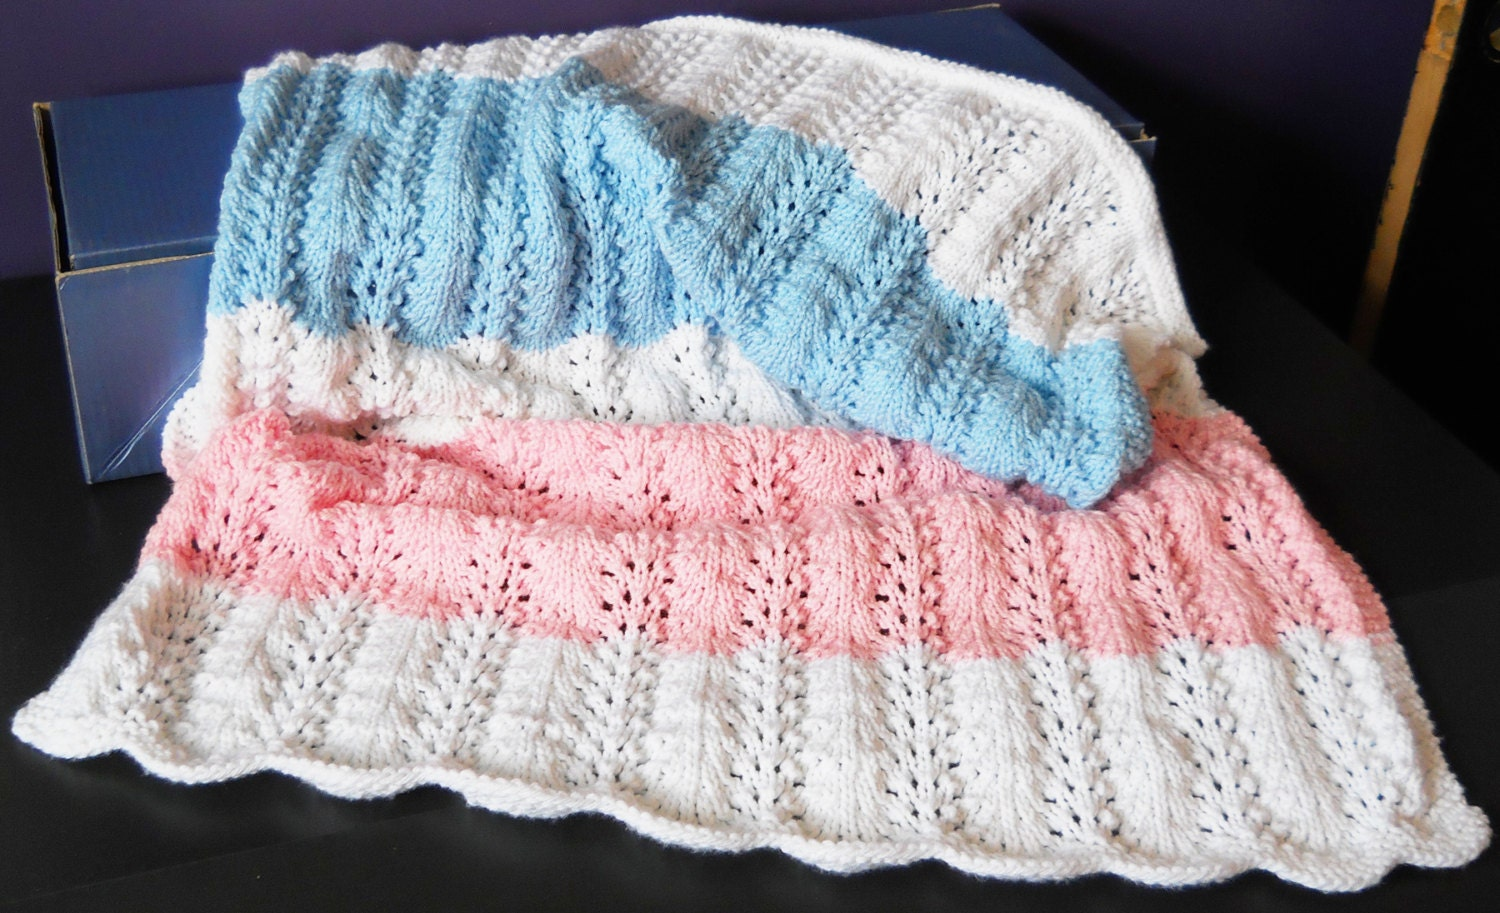 Fan And Feather Knitting Pattern For Baby Blanket : Feather and Fan Pattern Baby Blanket